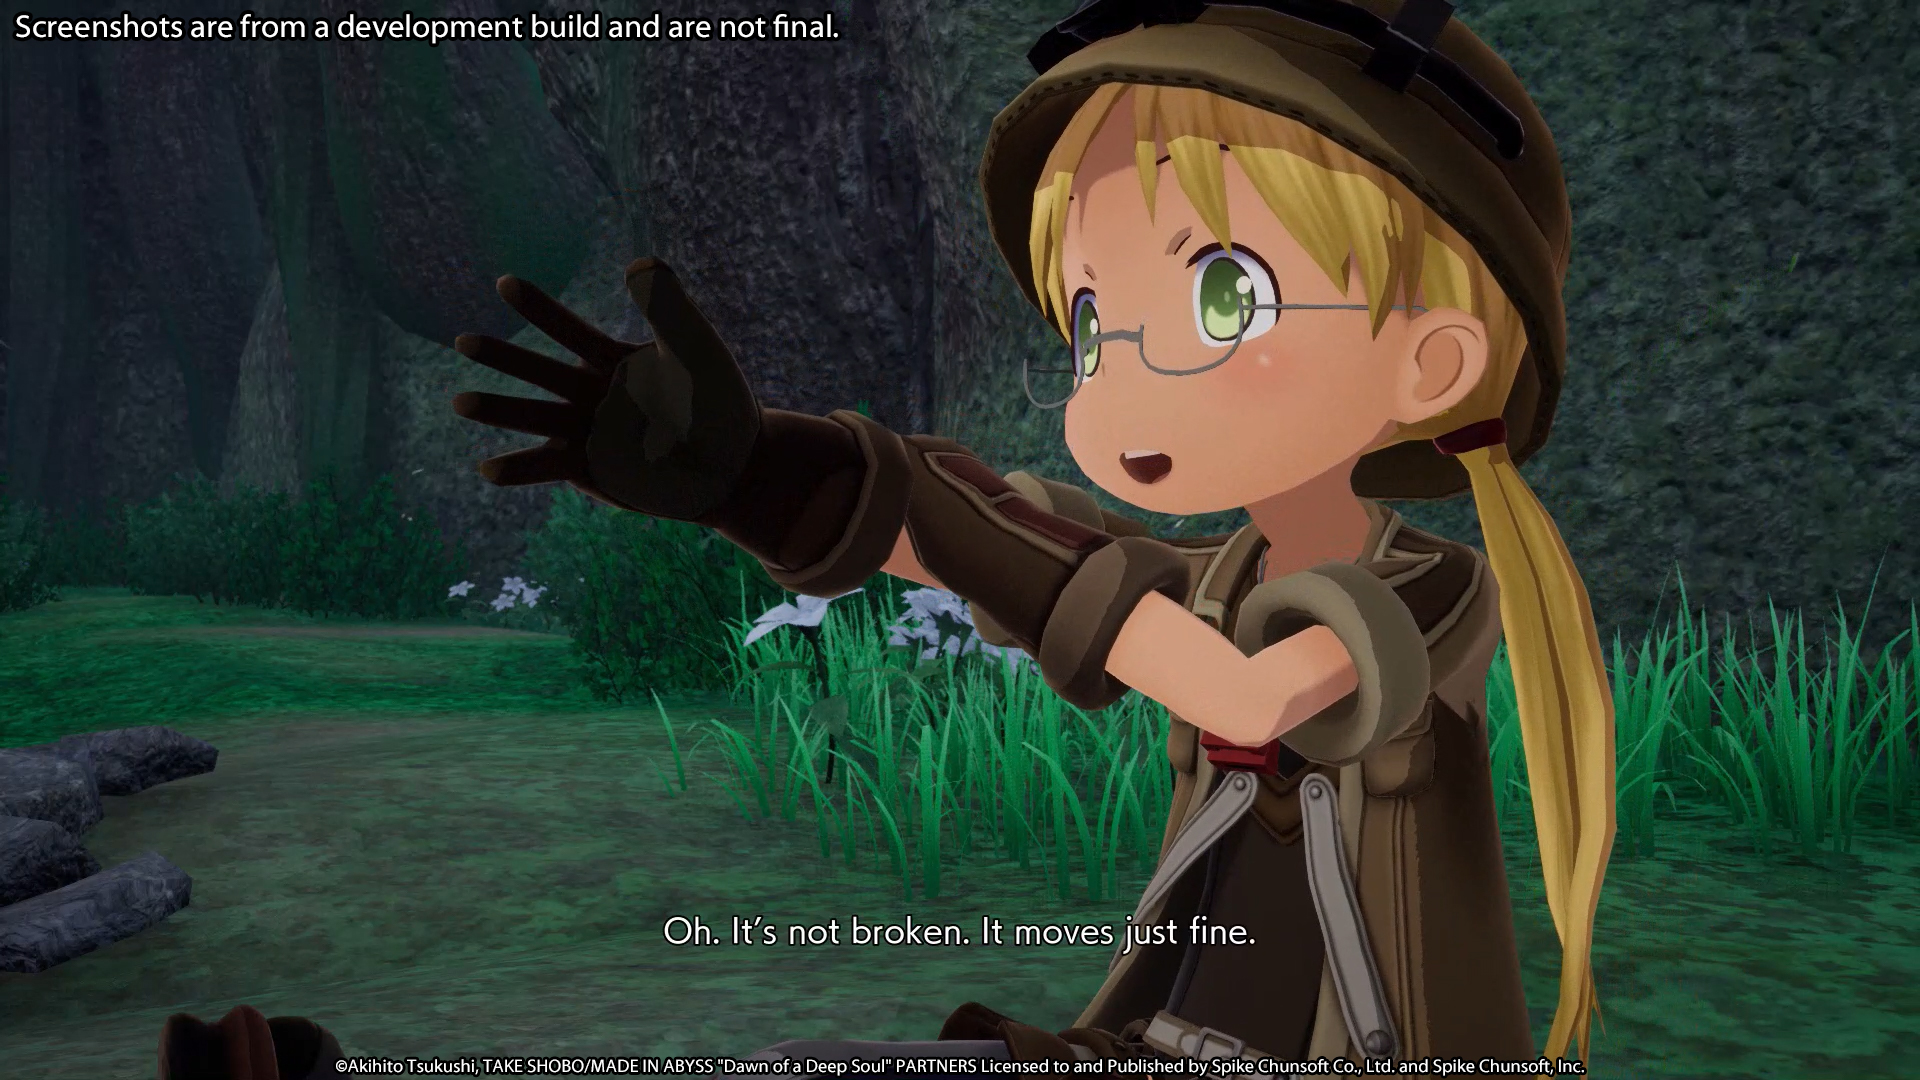 made in abyss video game